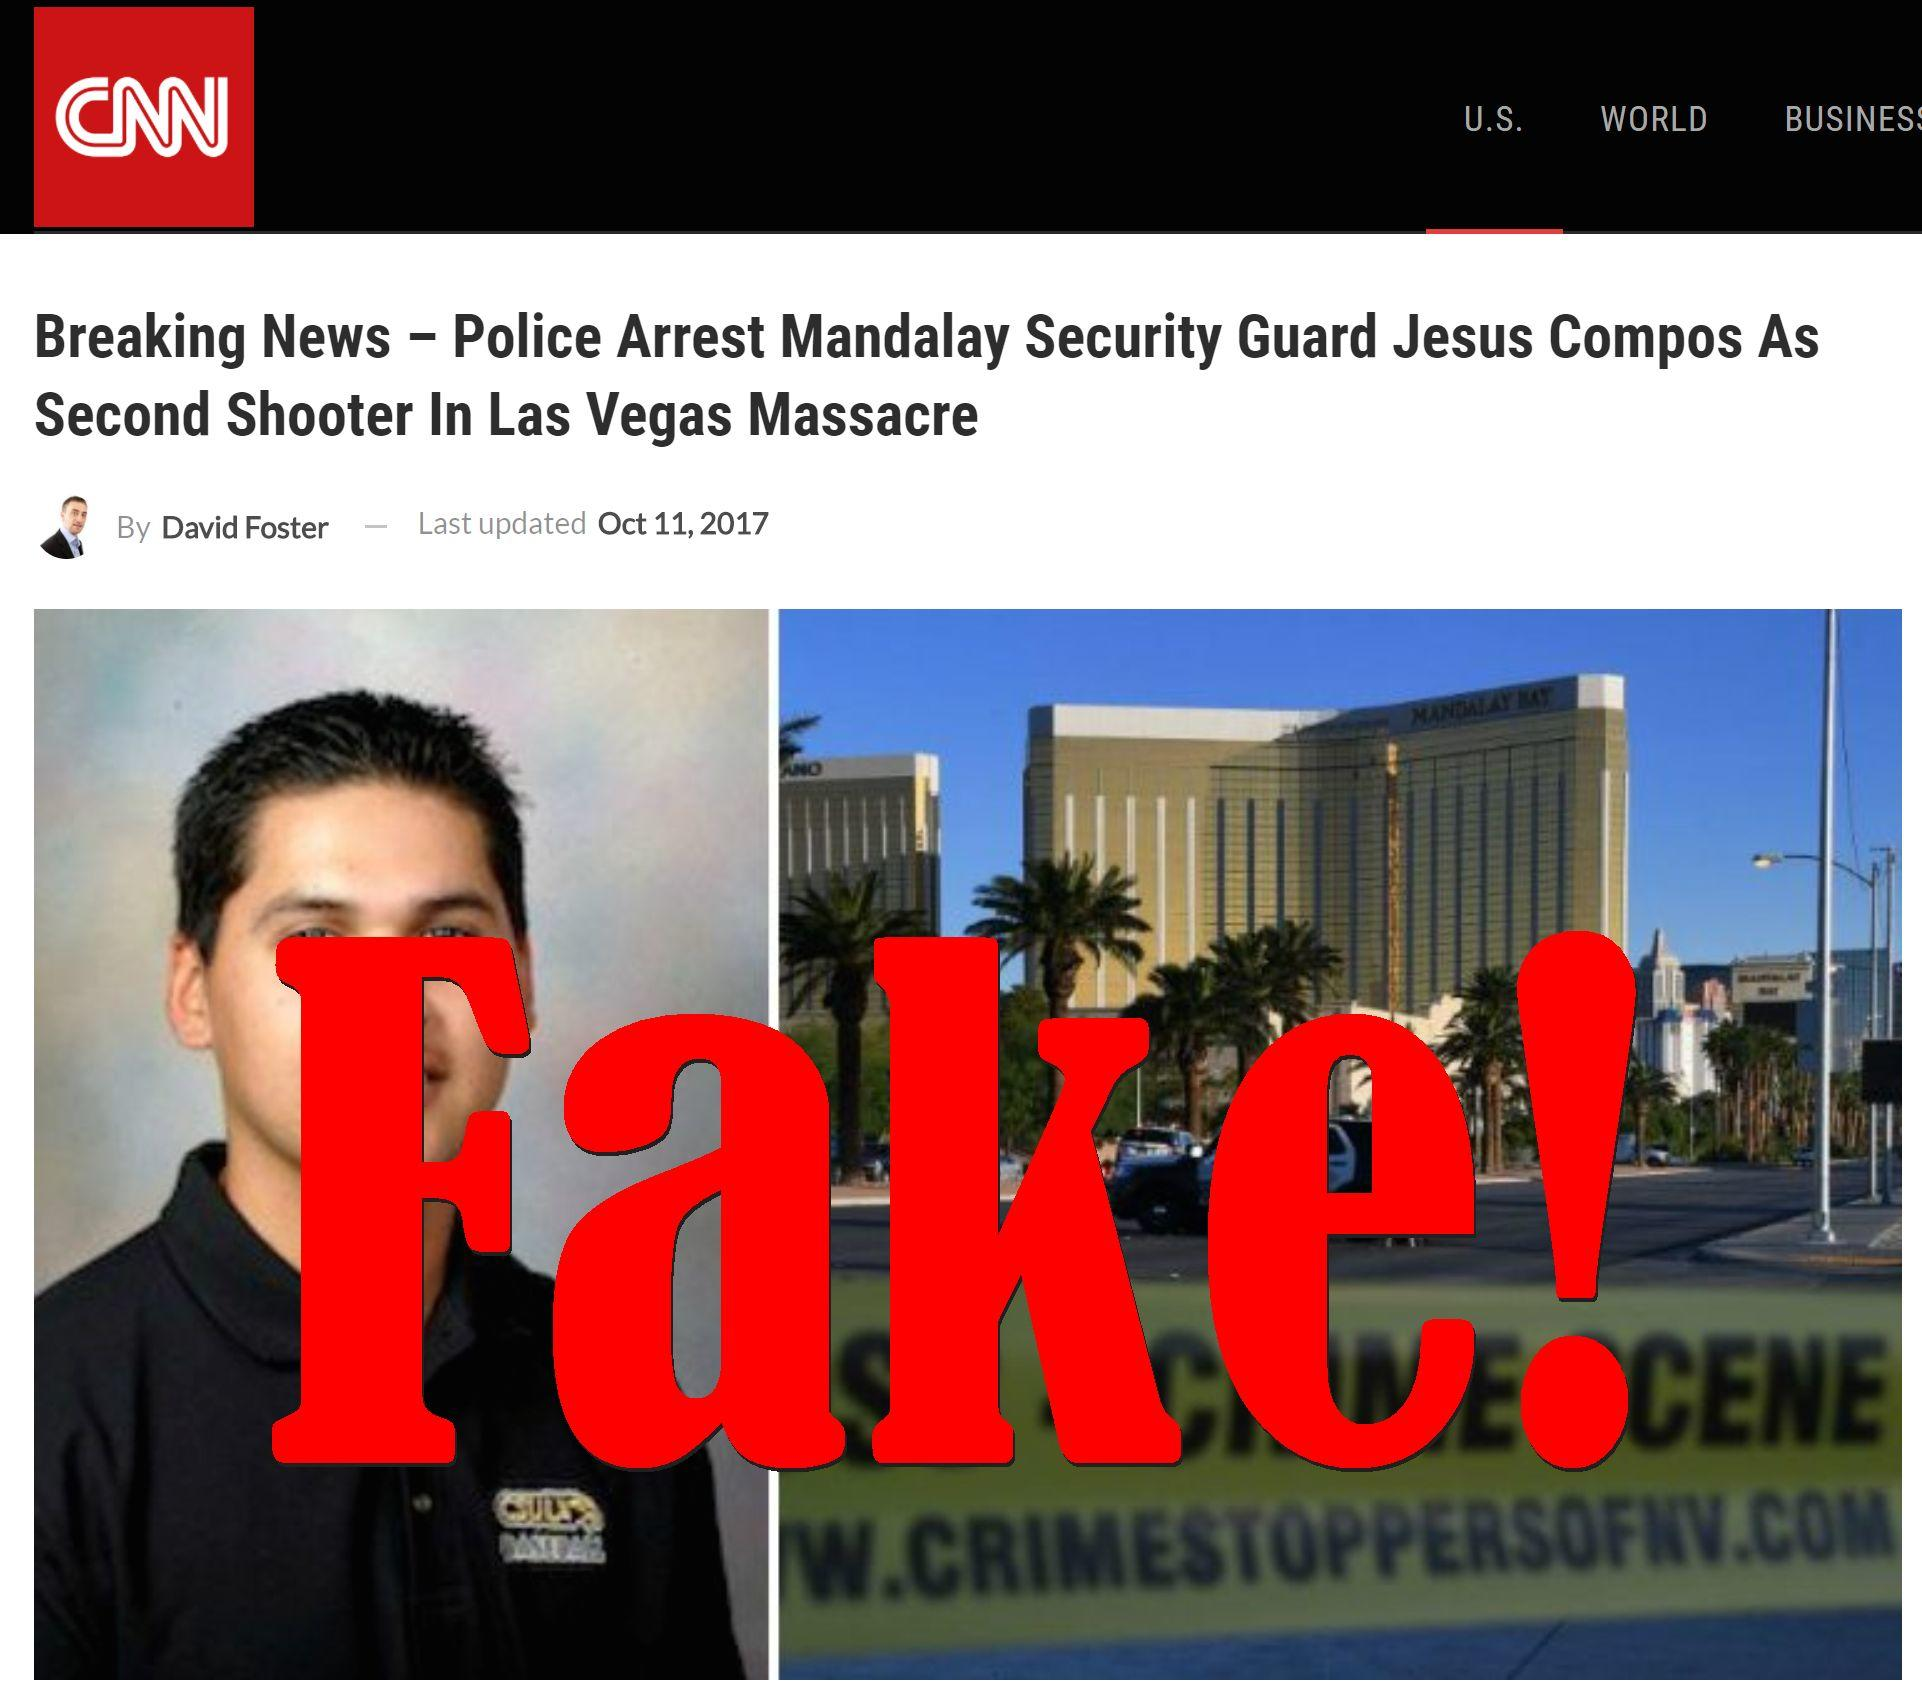 Fake News: Police Did NOT Arrest Mandalay Security Guard Jesus Compos As Second Shooter In Las Vegas Massacre